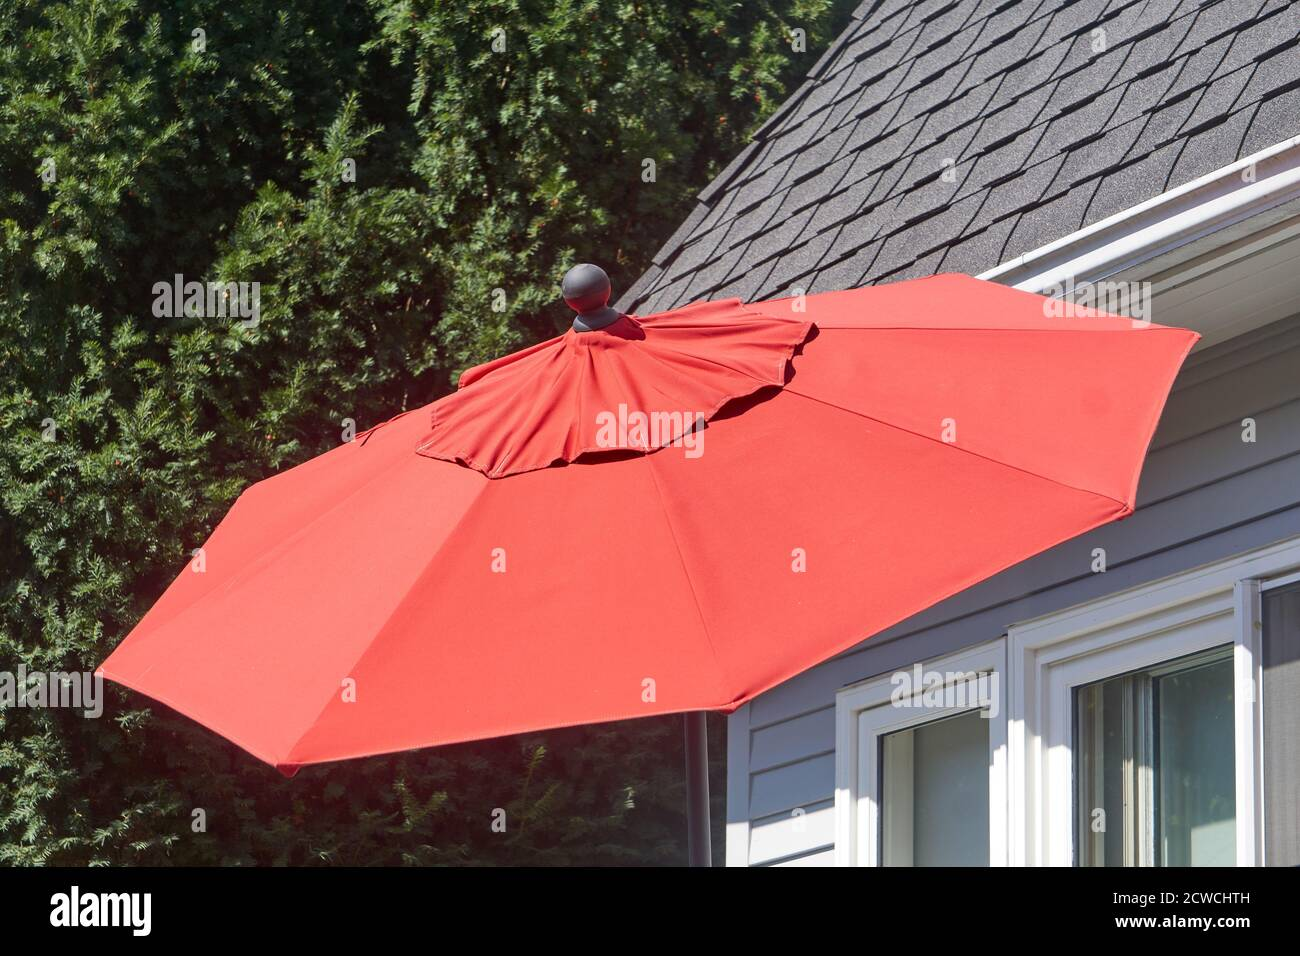 Big red outdoor umbrella outside a house Stock Photo